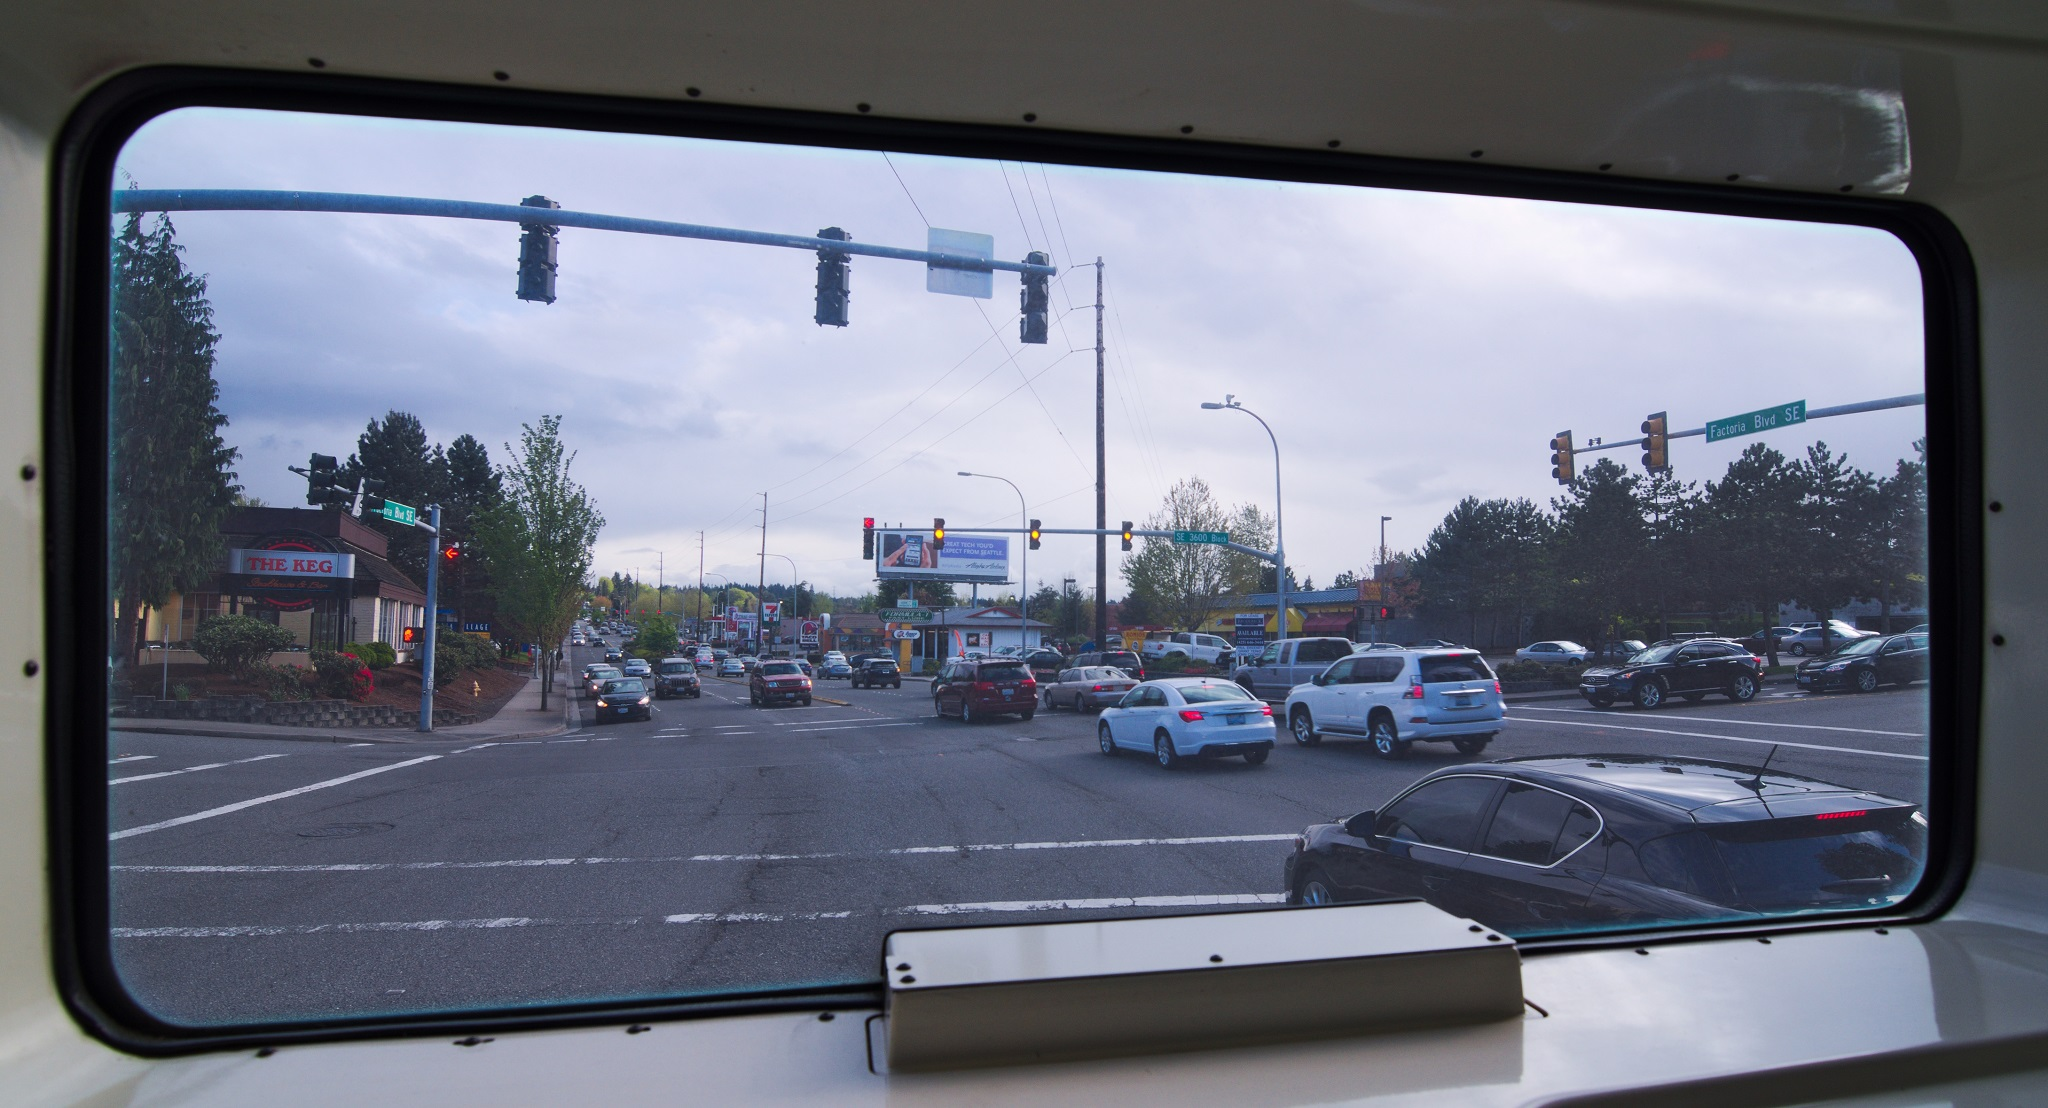 Factoria Boulevard. How Lovely. Yet that's one of Bellevue's main transit destinations.